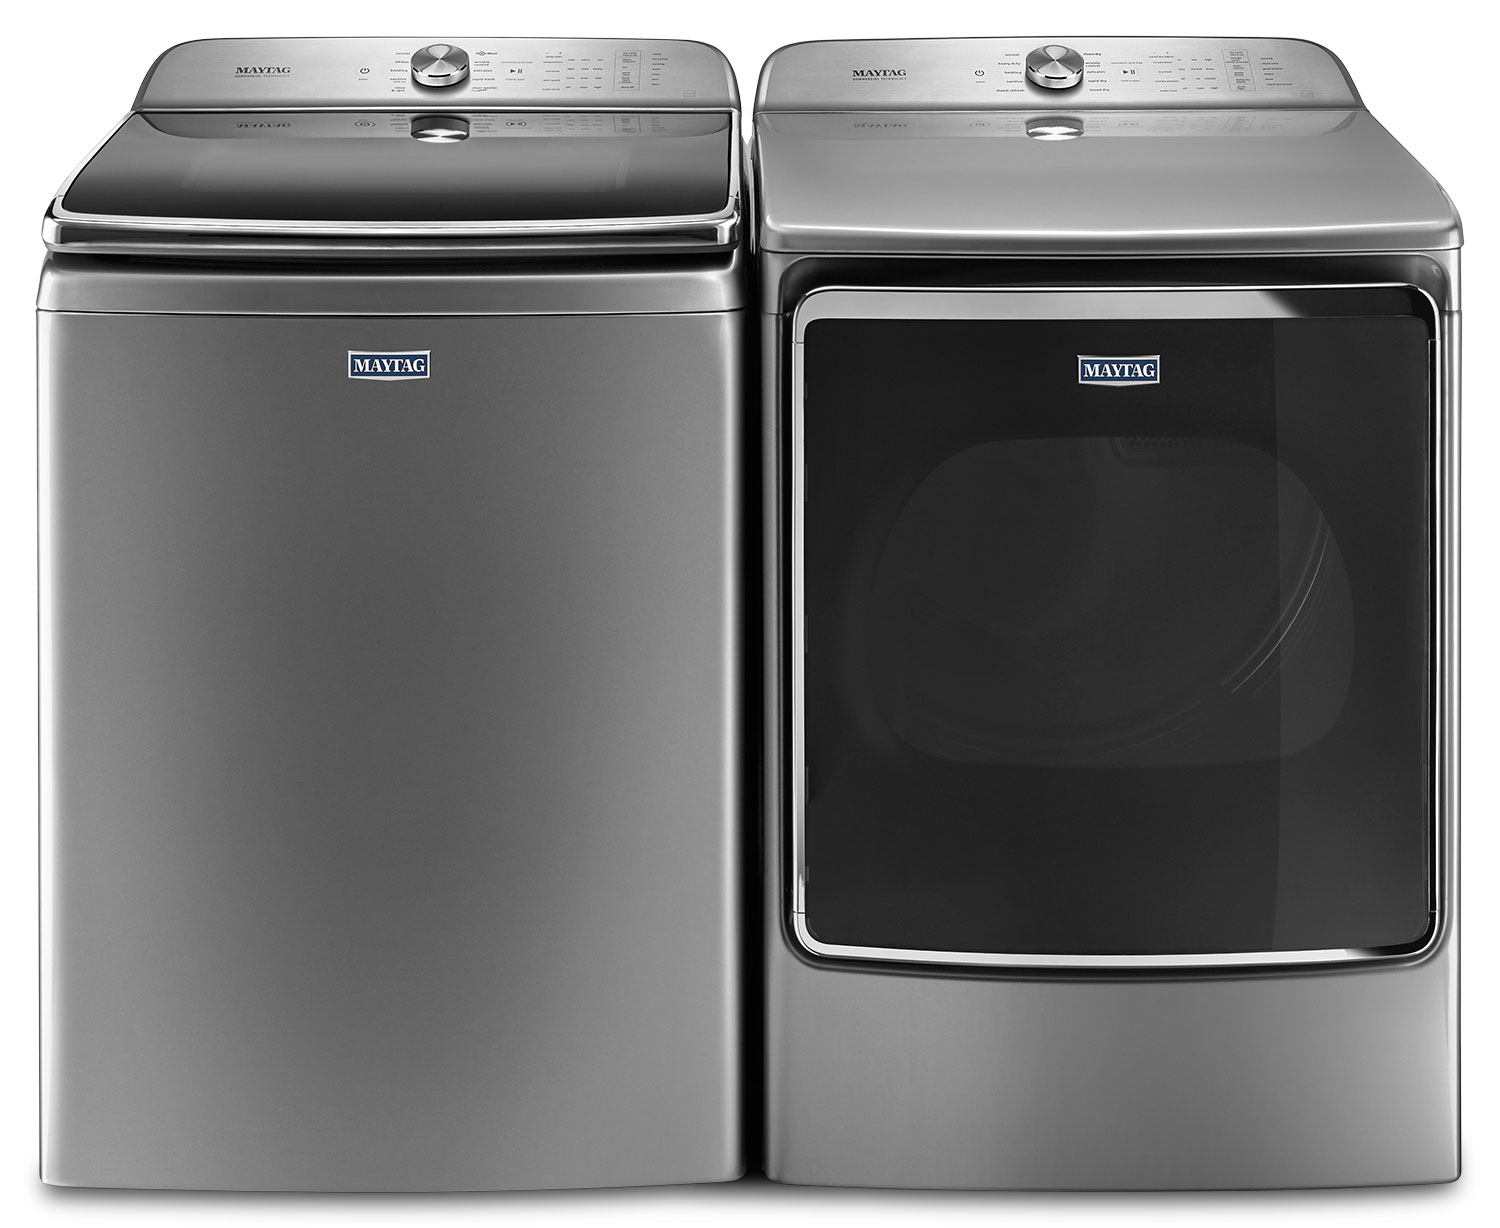 Maytag 7 1 cu ft top load washer mvwb955fc the brick - Maytag whirlpool ...